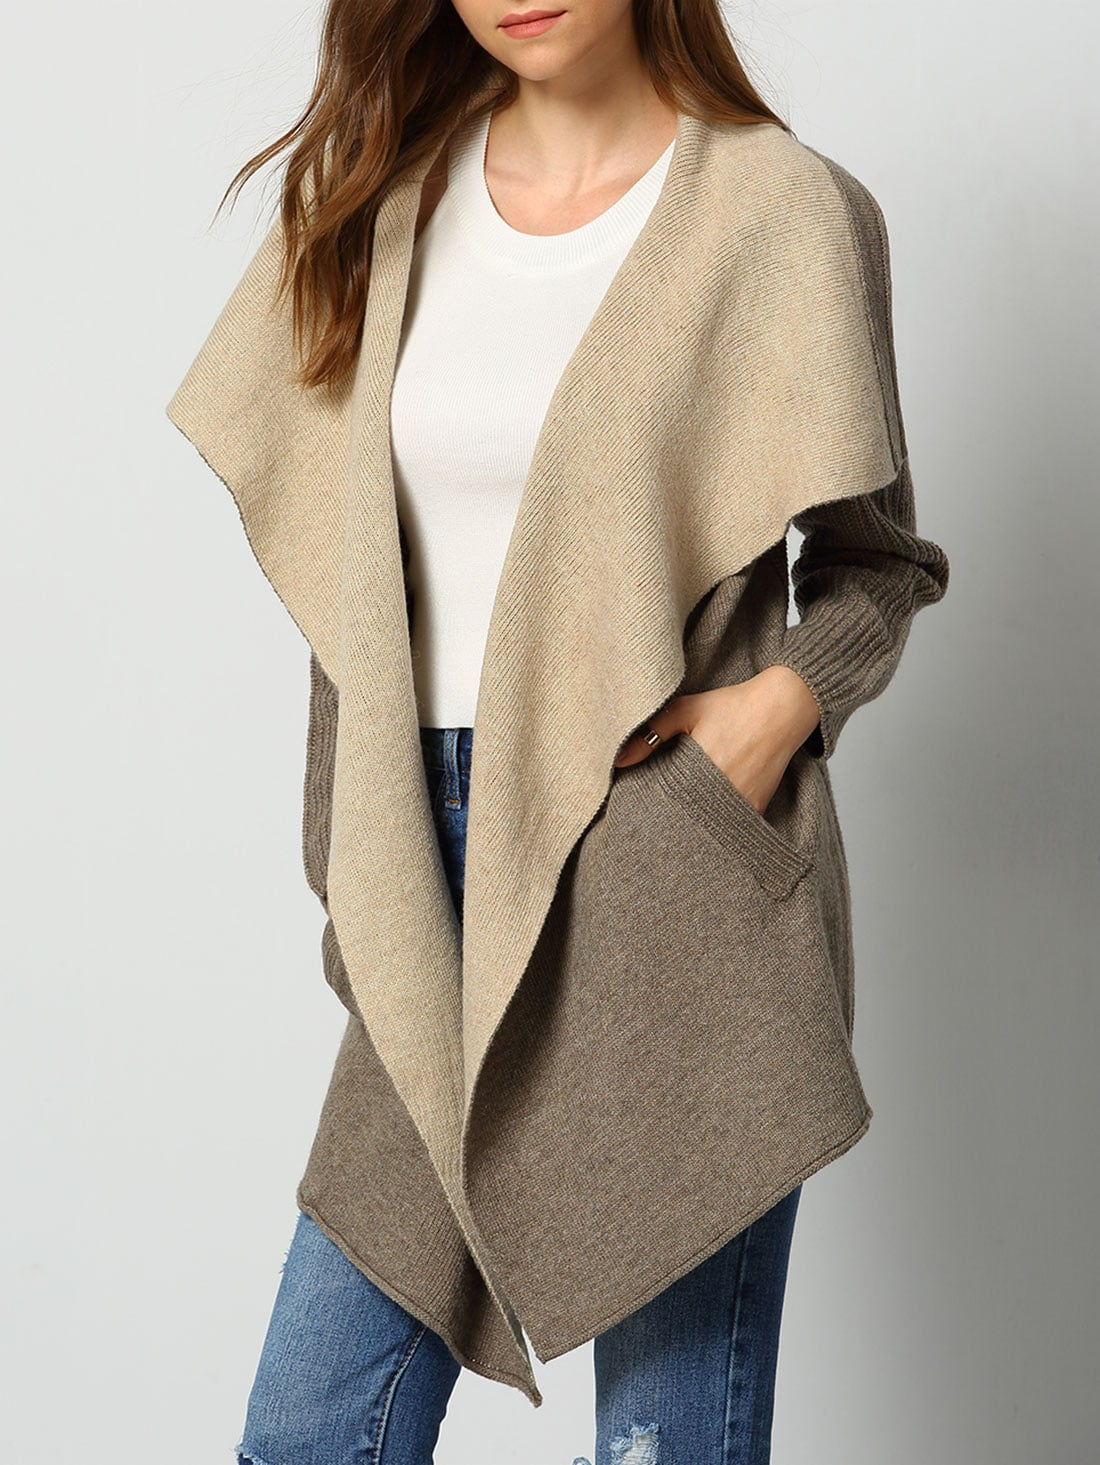 Grey Sweater Coat 66